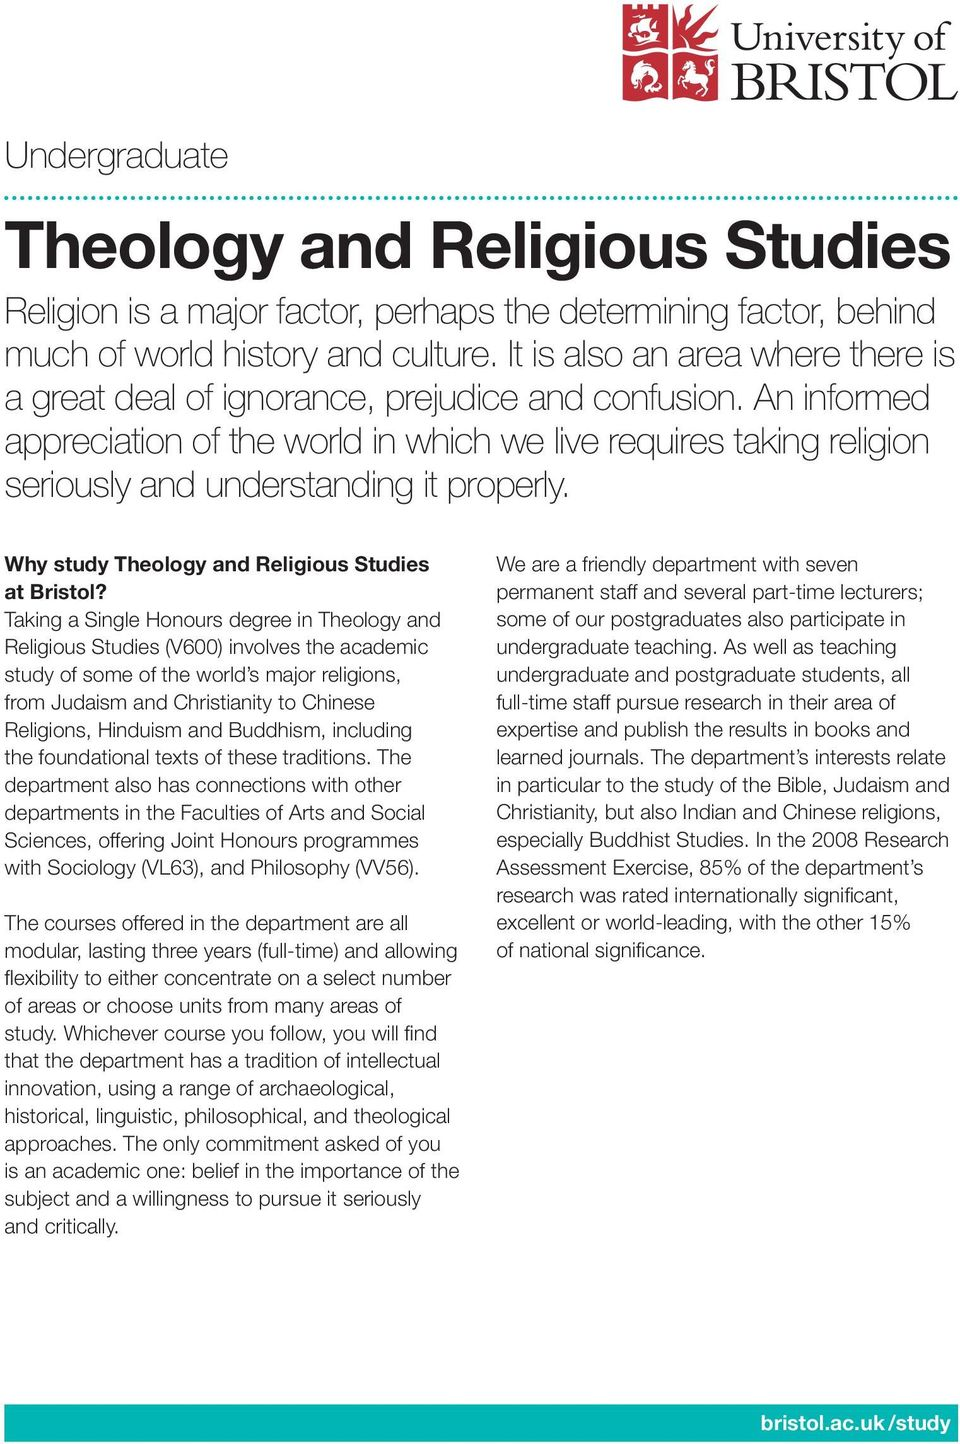 An informed appreciation of the world in which we live requires taking religion seriously and understanding it properly. Why study Theology and Religious Studies at Bristol?